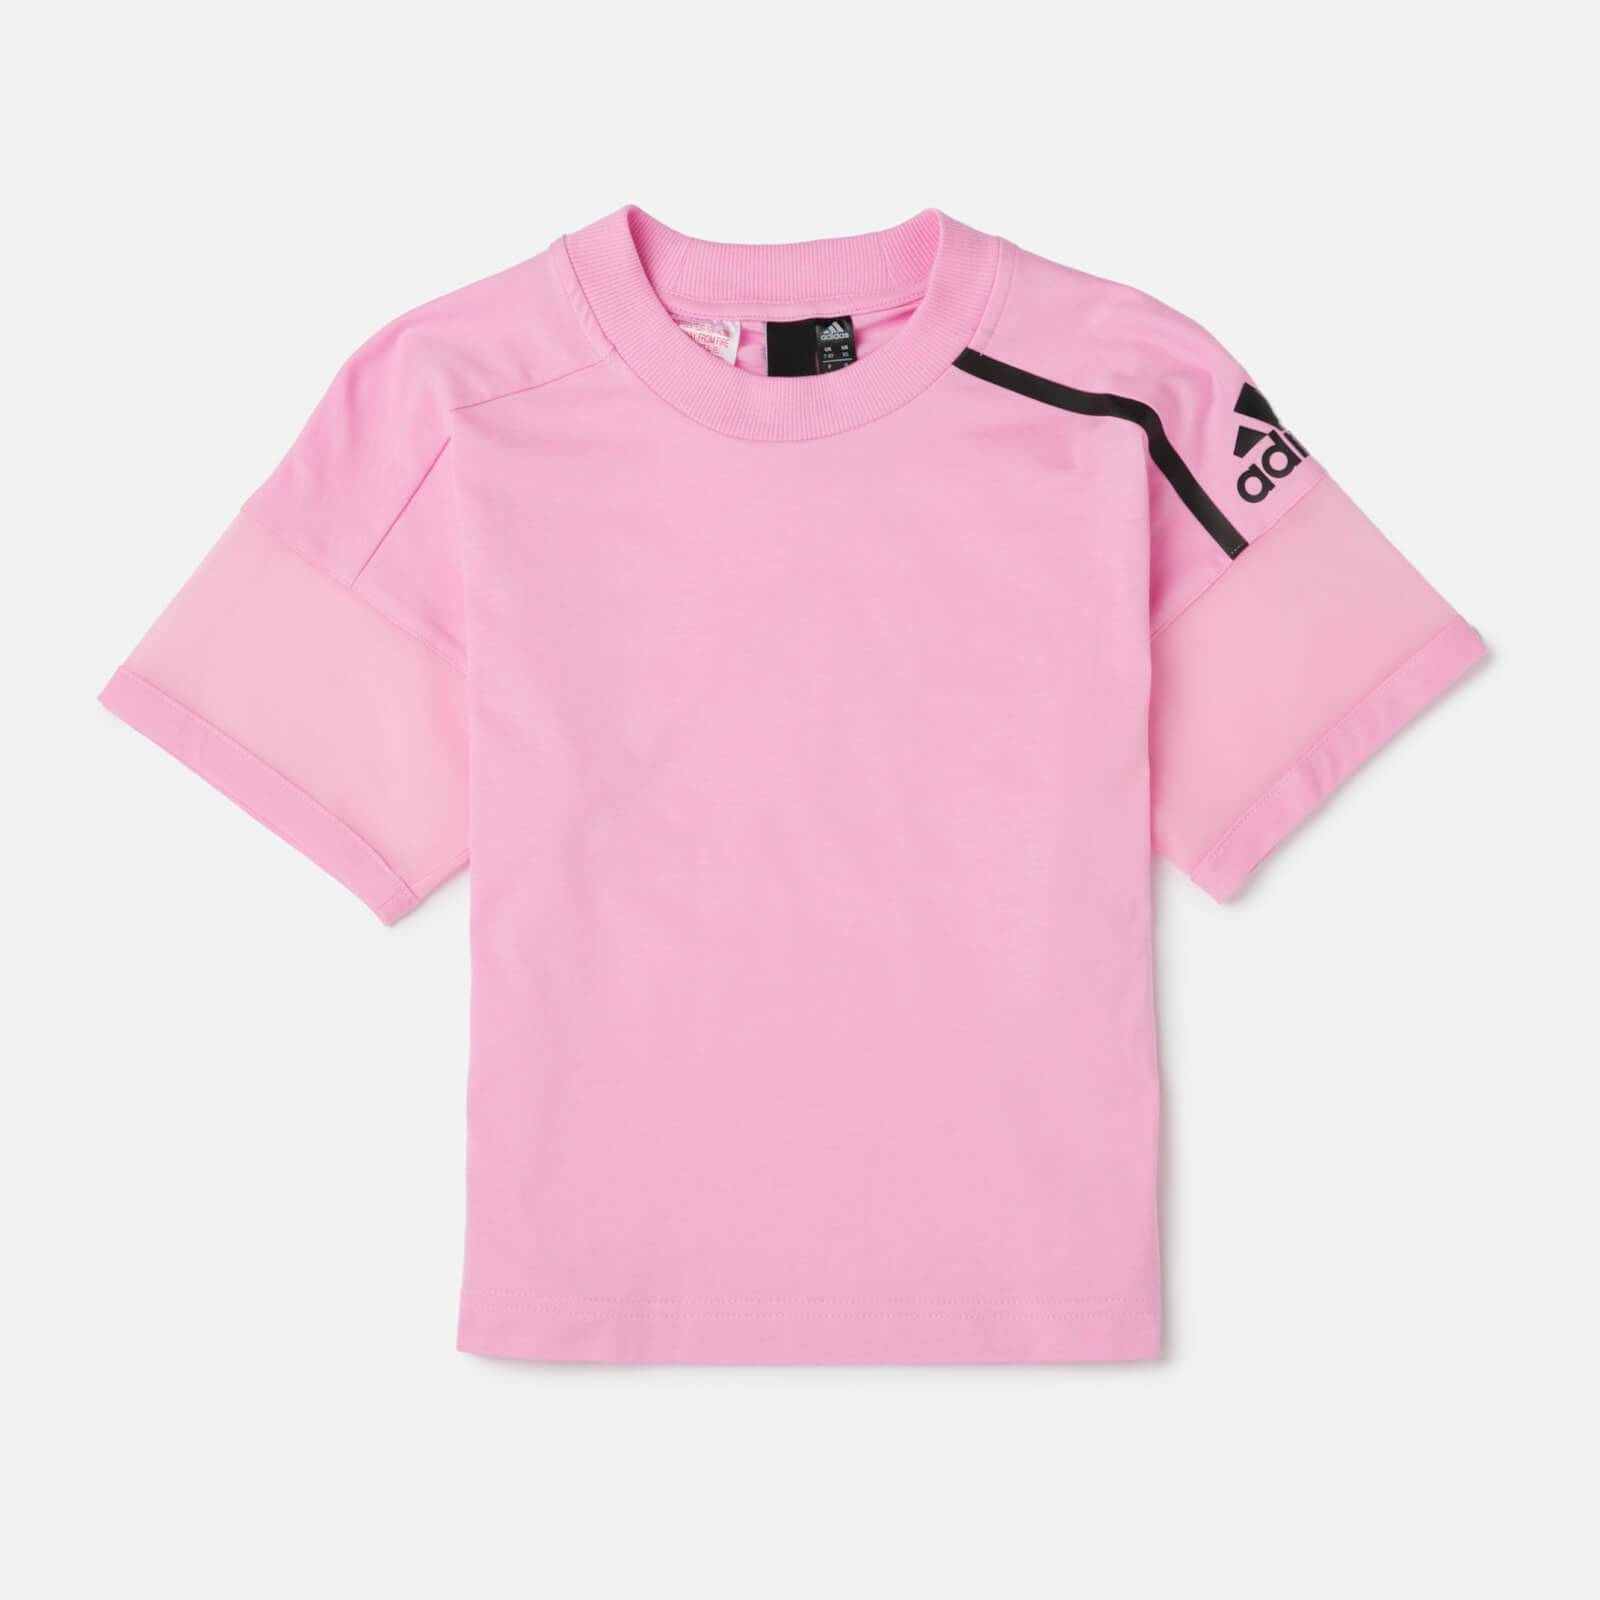 adidas Young Girls' ZNE Short Sleeve T-Shirt - Pink - 11-12 Years - Pink